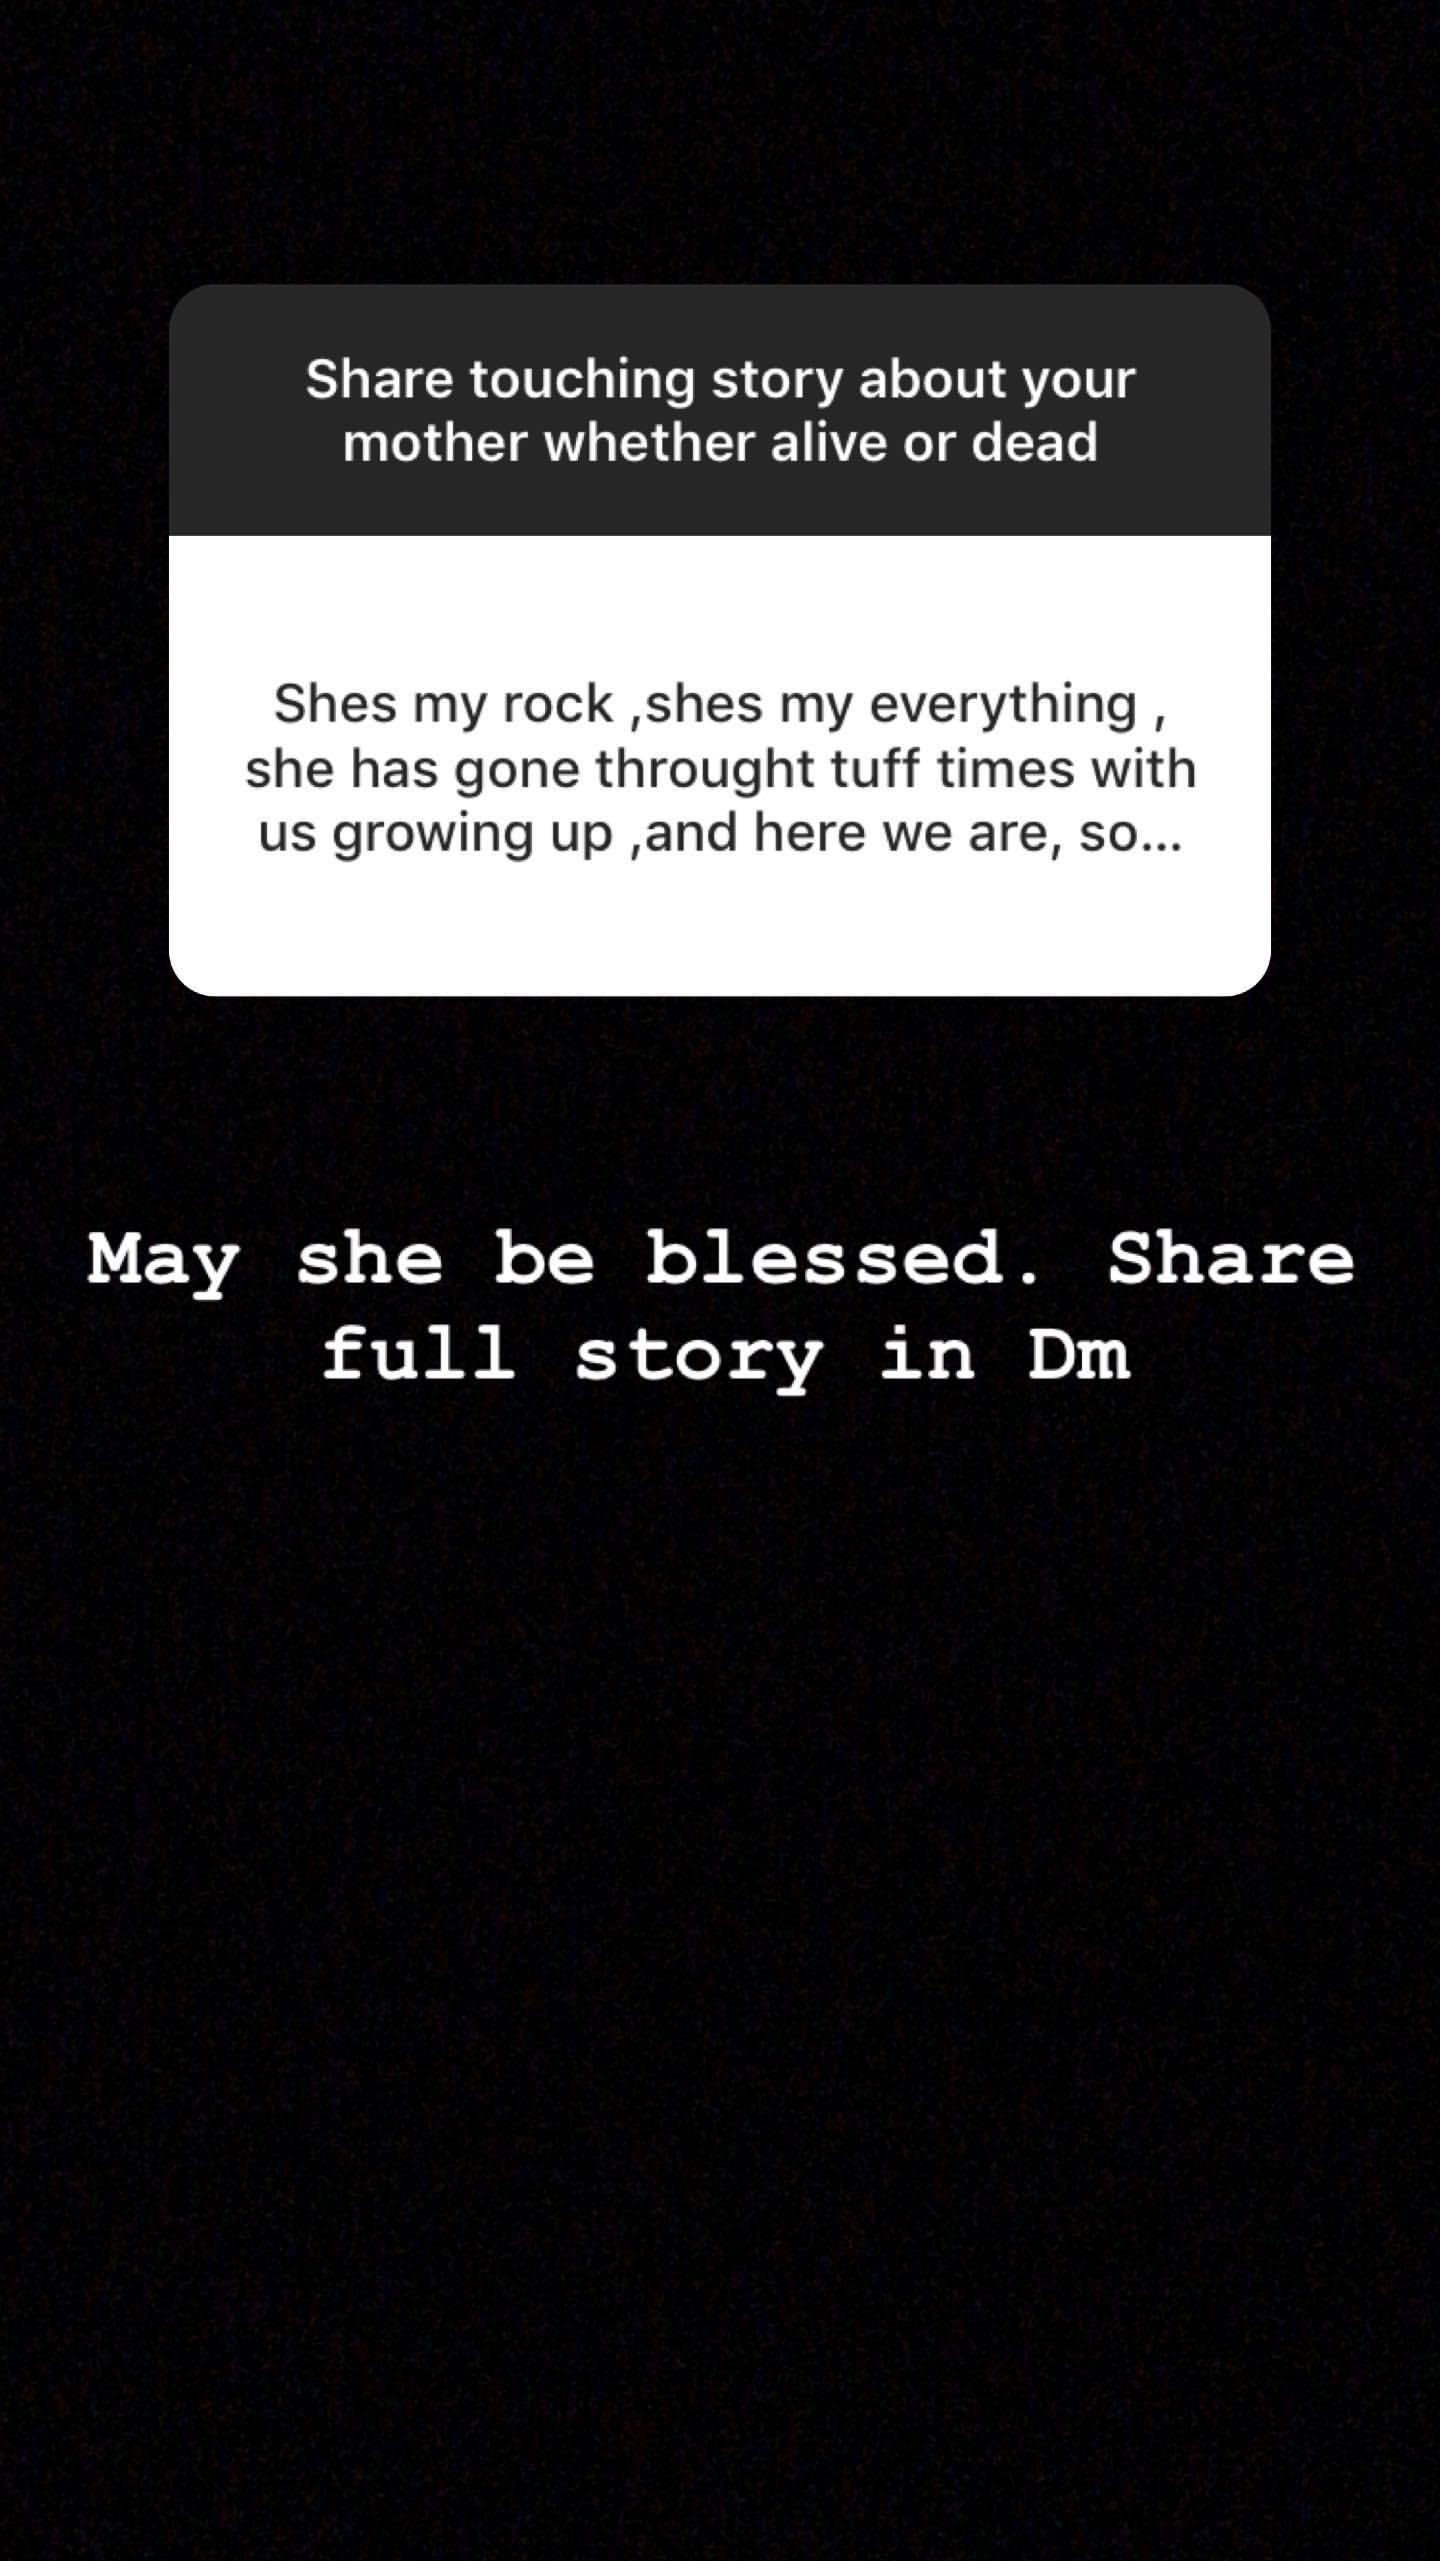 58409746 2322526558032711 8967074209019802652 n - Tear-jerking! Mpasho fans break down sharing touching stories about their mothers